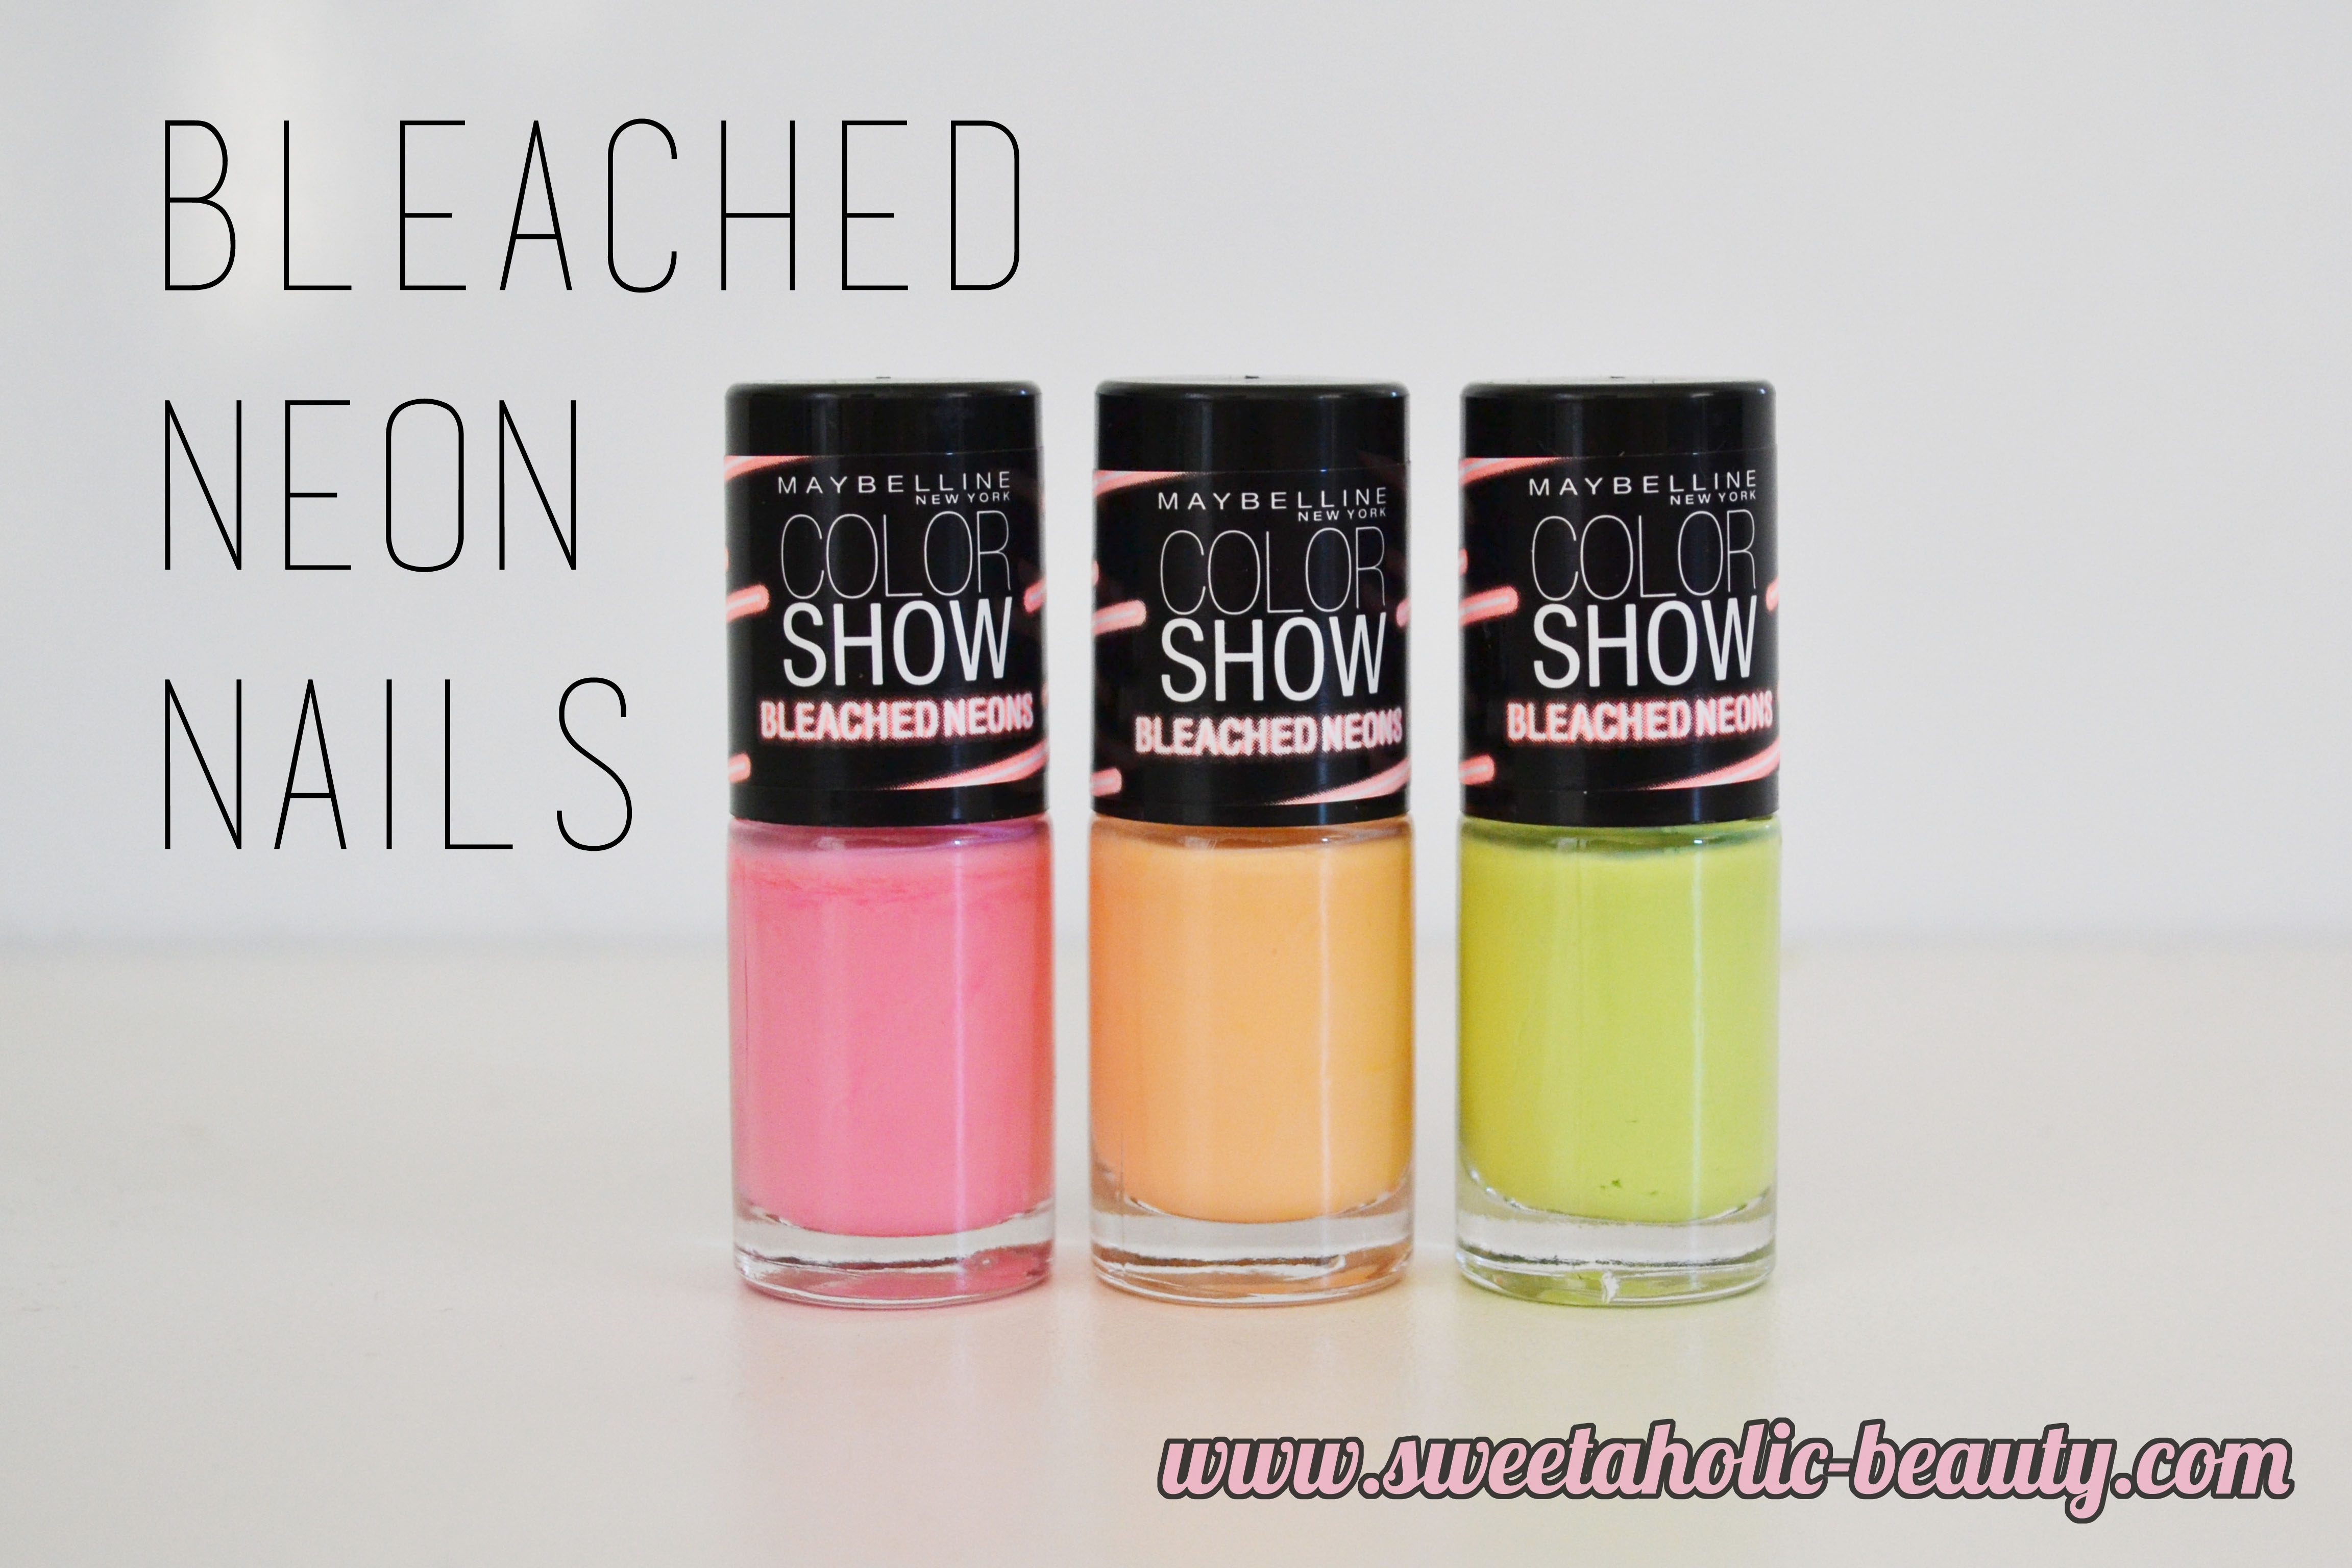 Maybelline Colour Show Bleached Neon Nail Enamels